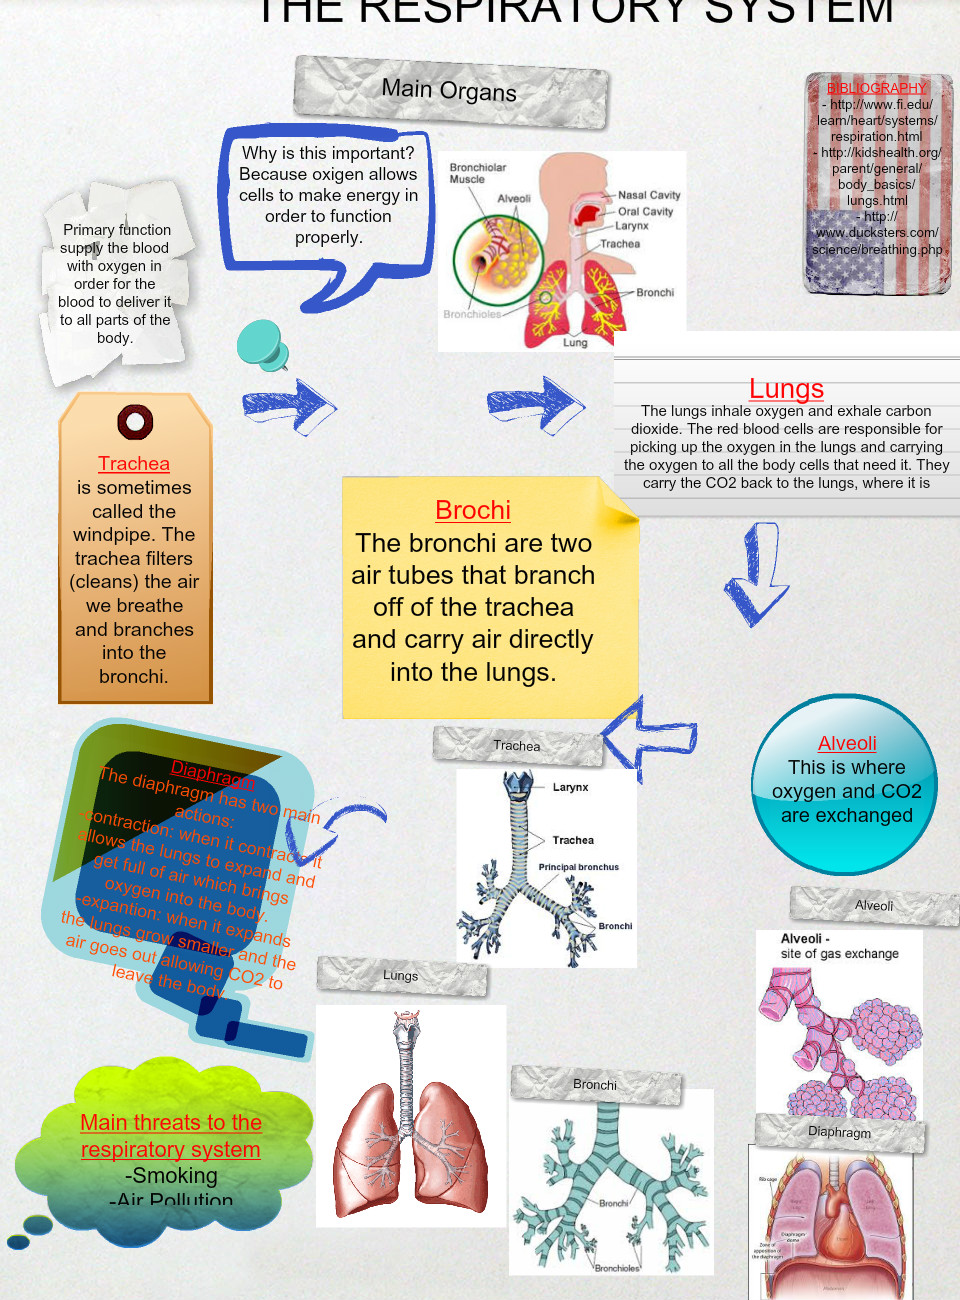 5th Grade - The Respiratory System